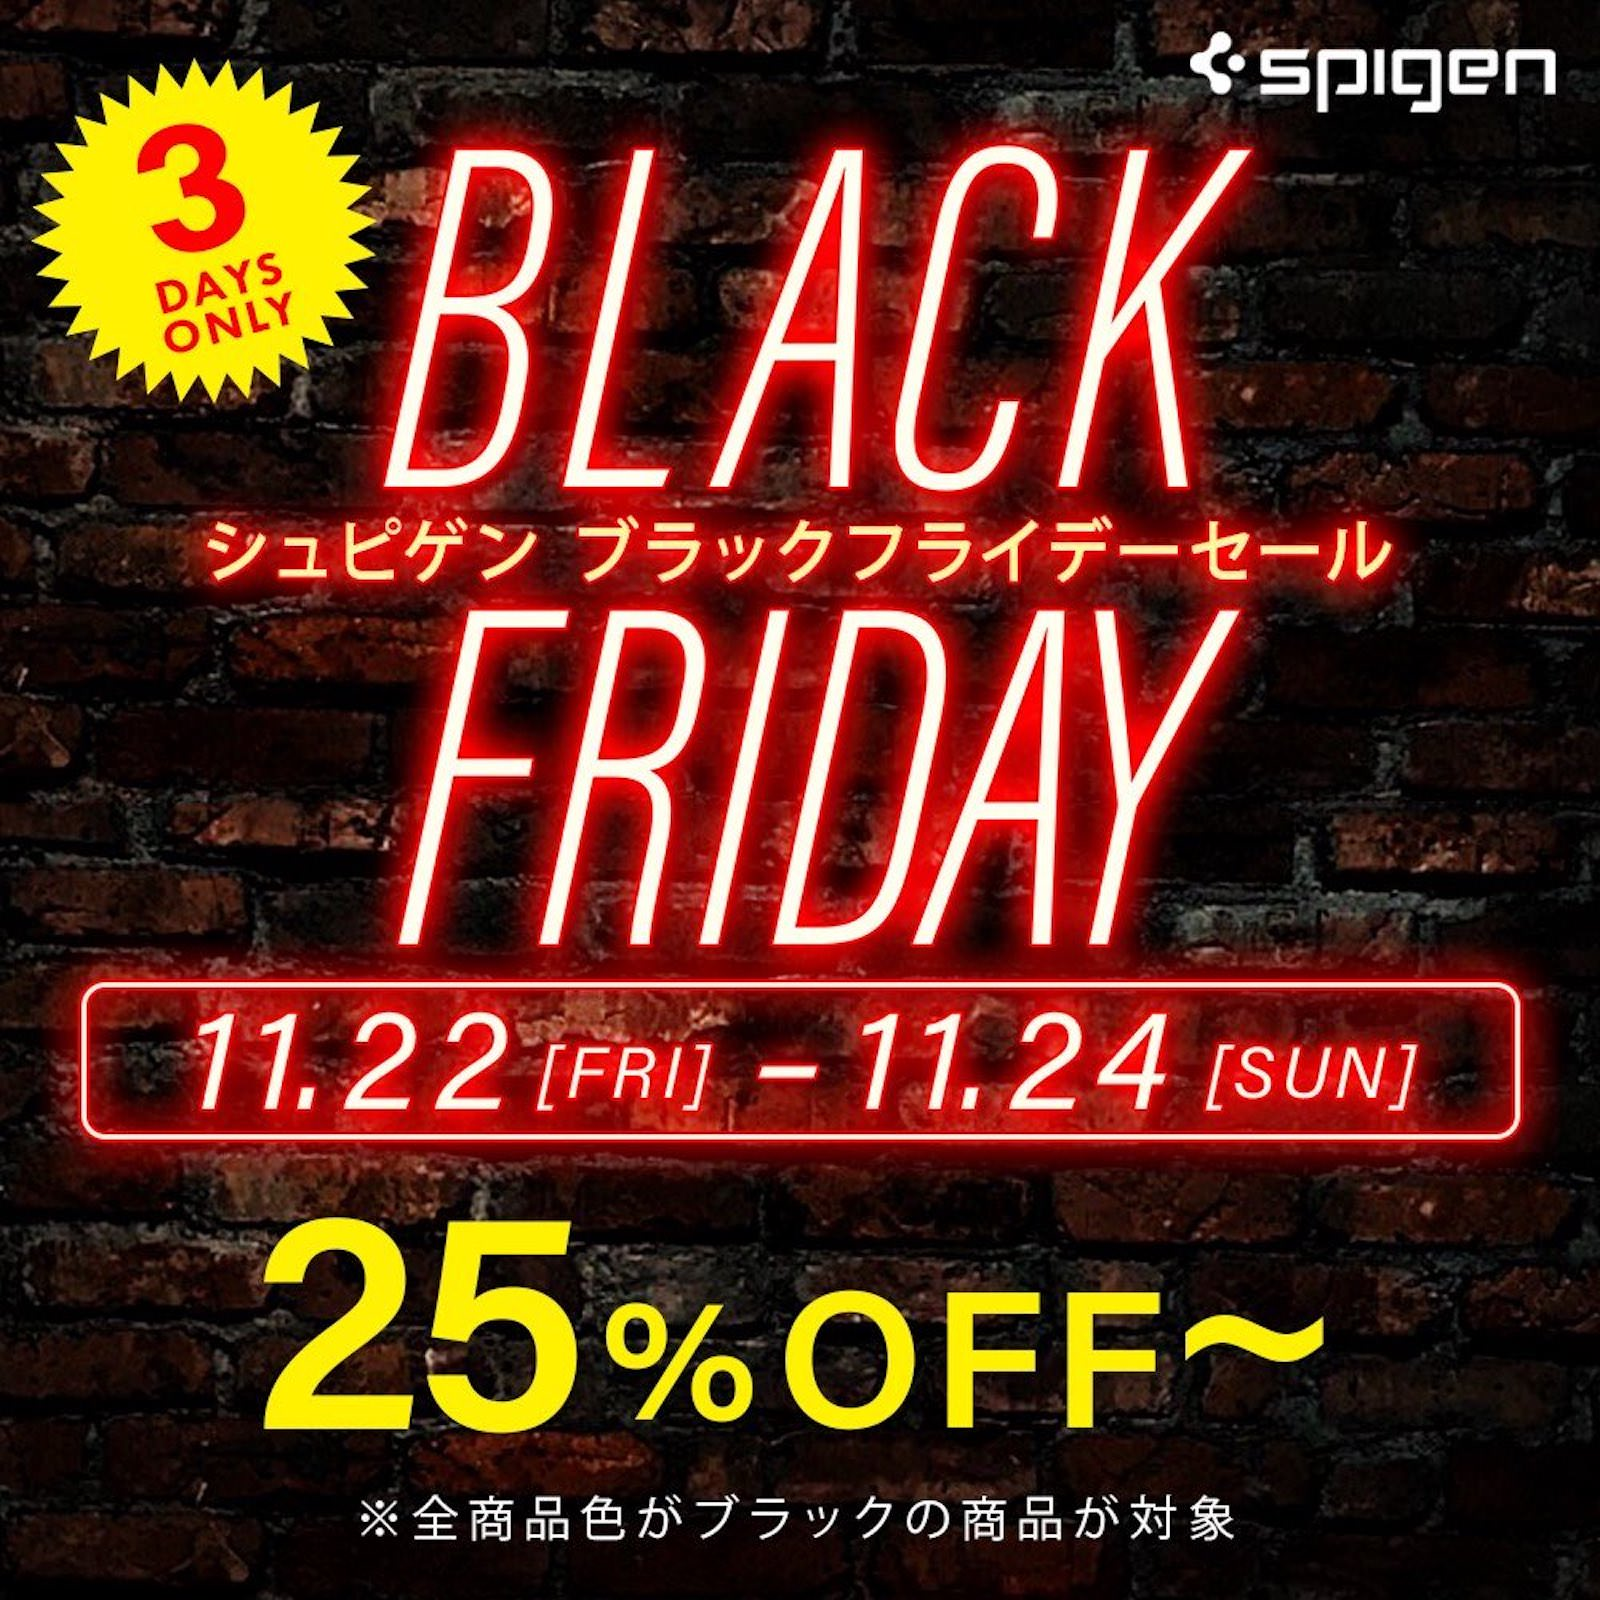 Spigen Black Friday Sale